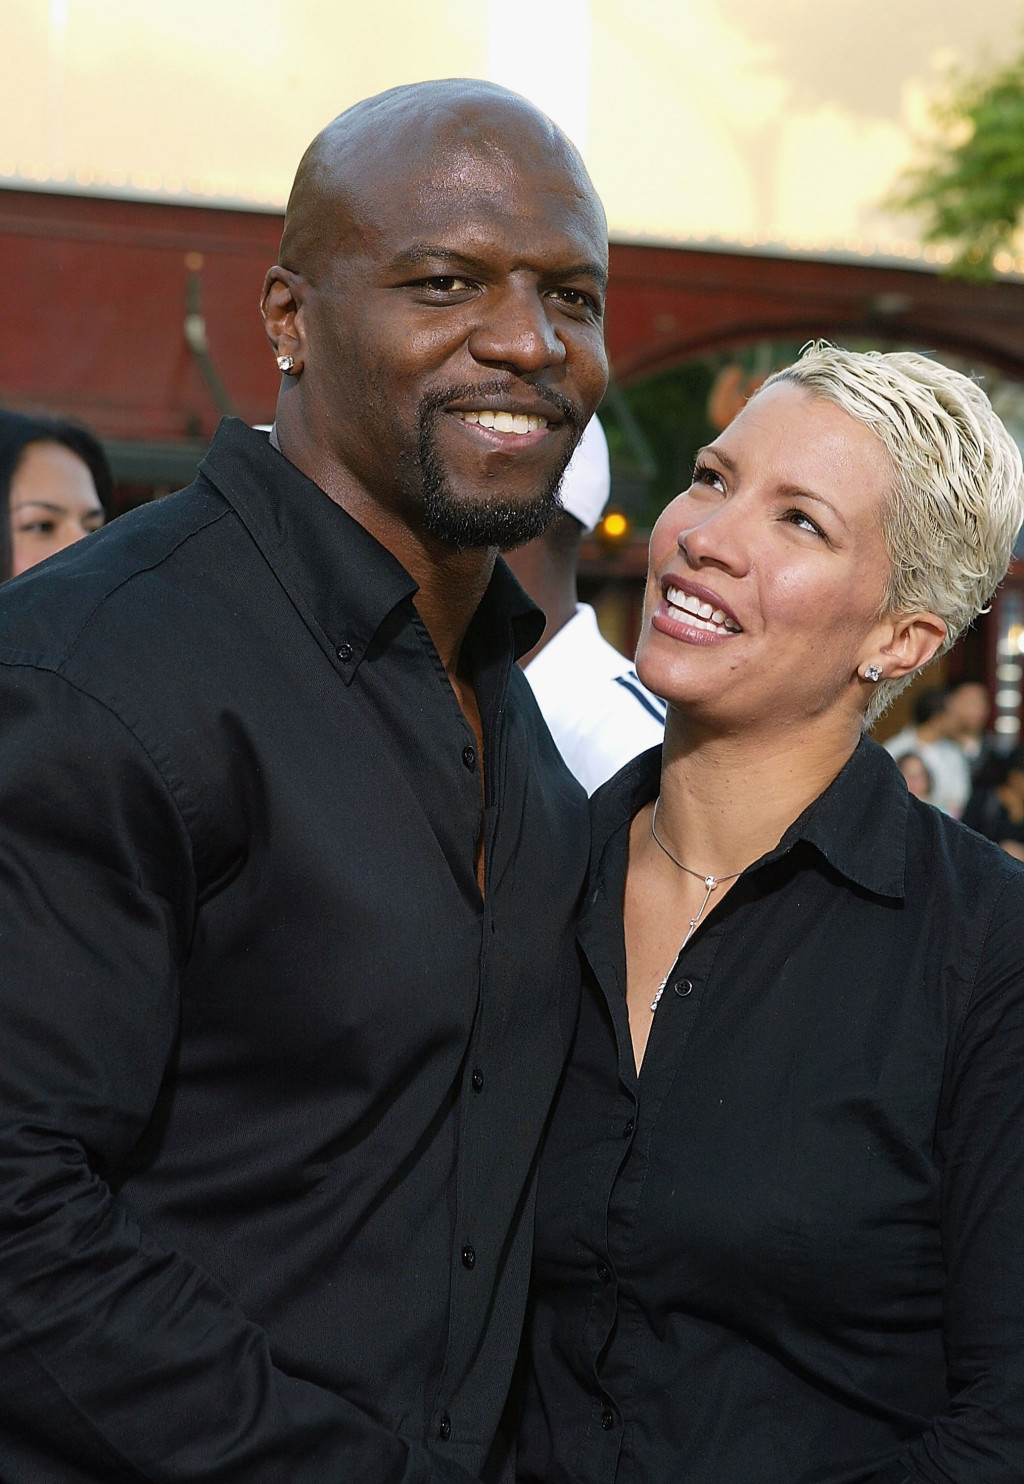 Terry Crews And Wife Rebecca Have Gone On Quite The Glow Up Together As They Celebrate 30 Years Of Marriage